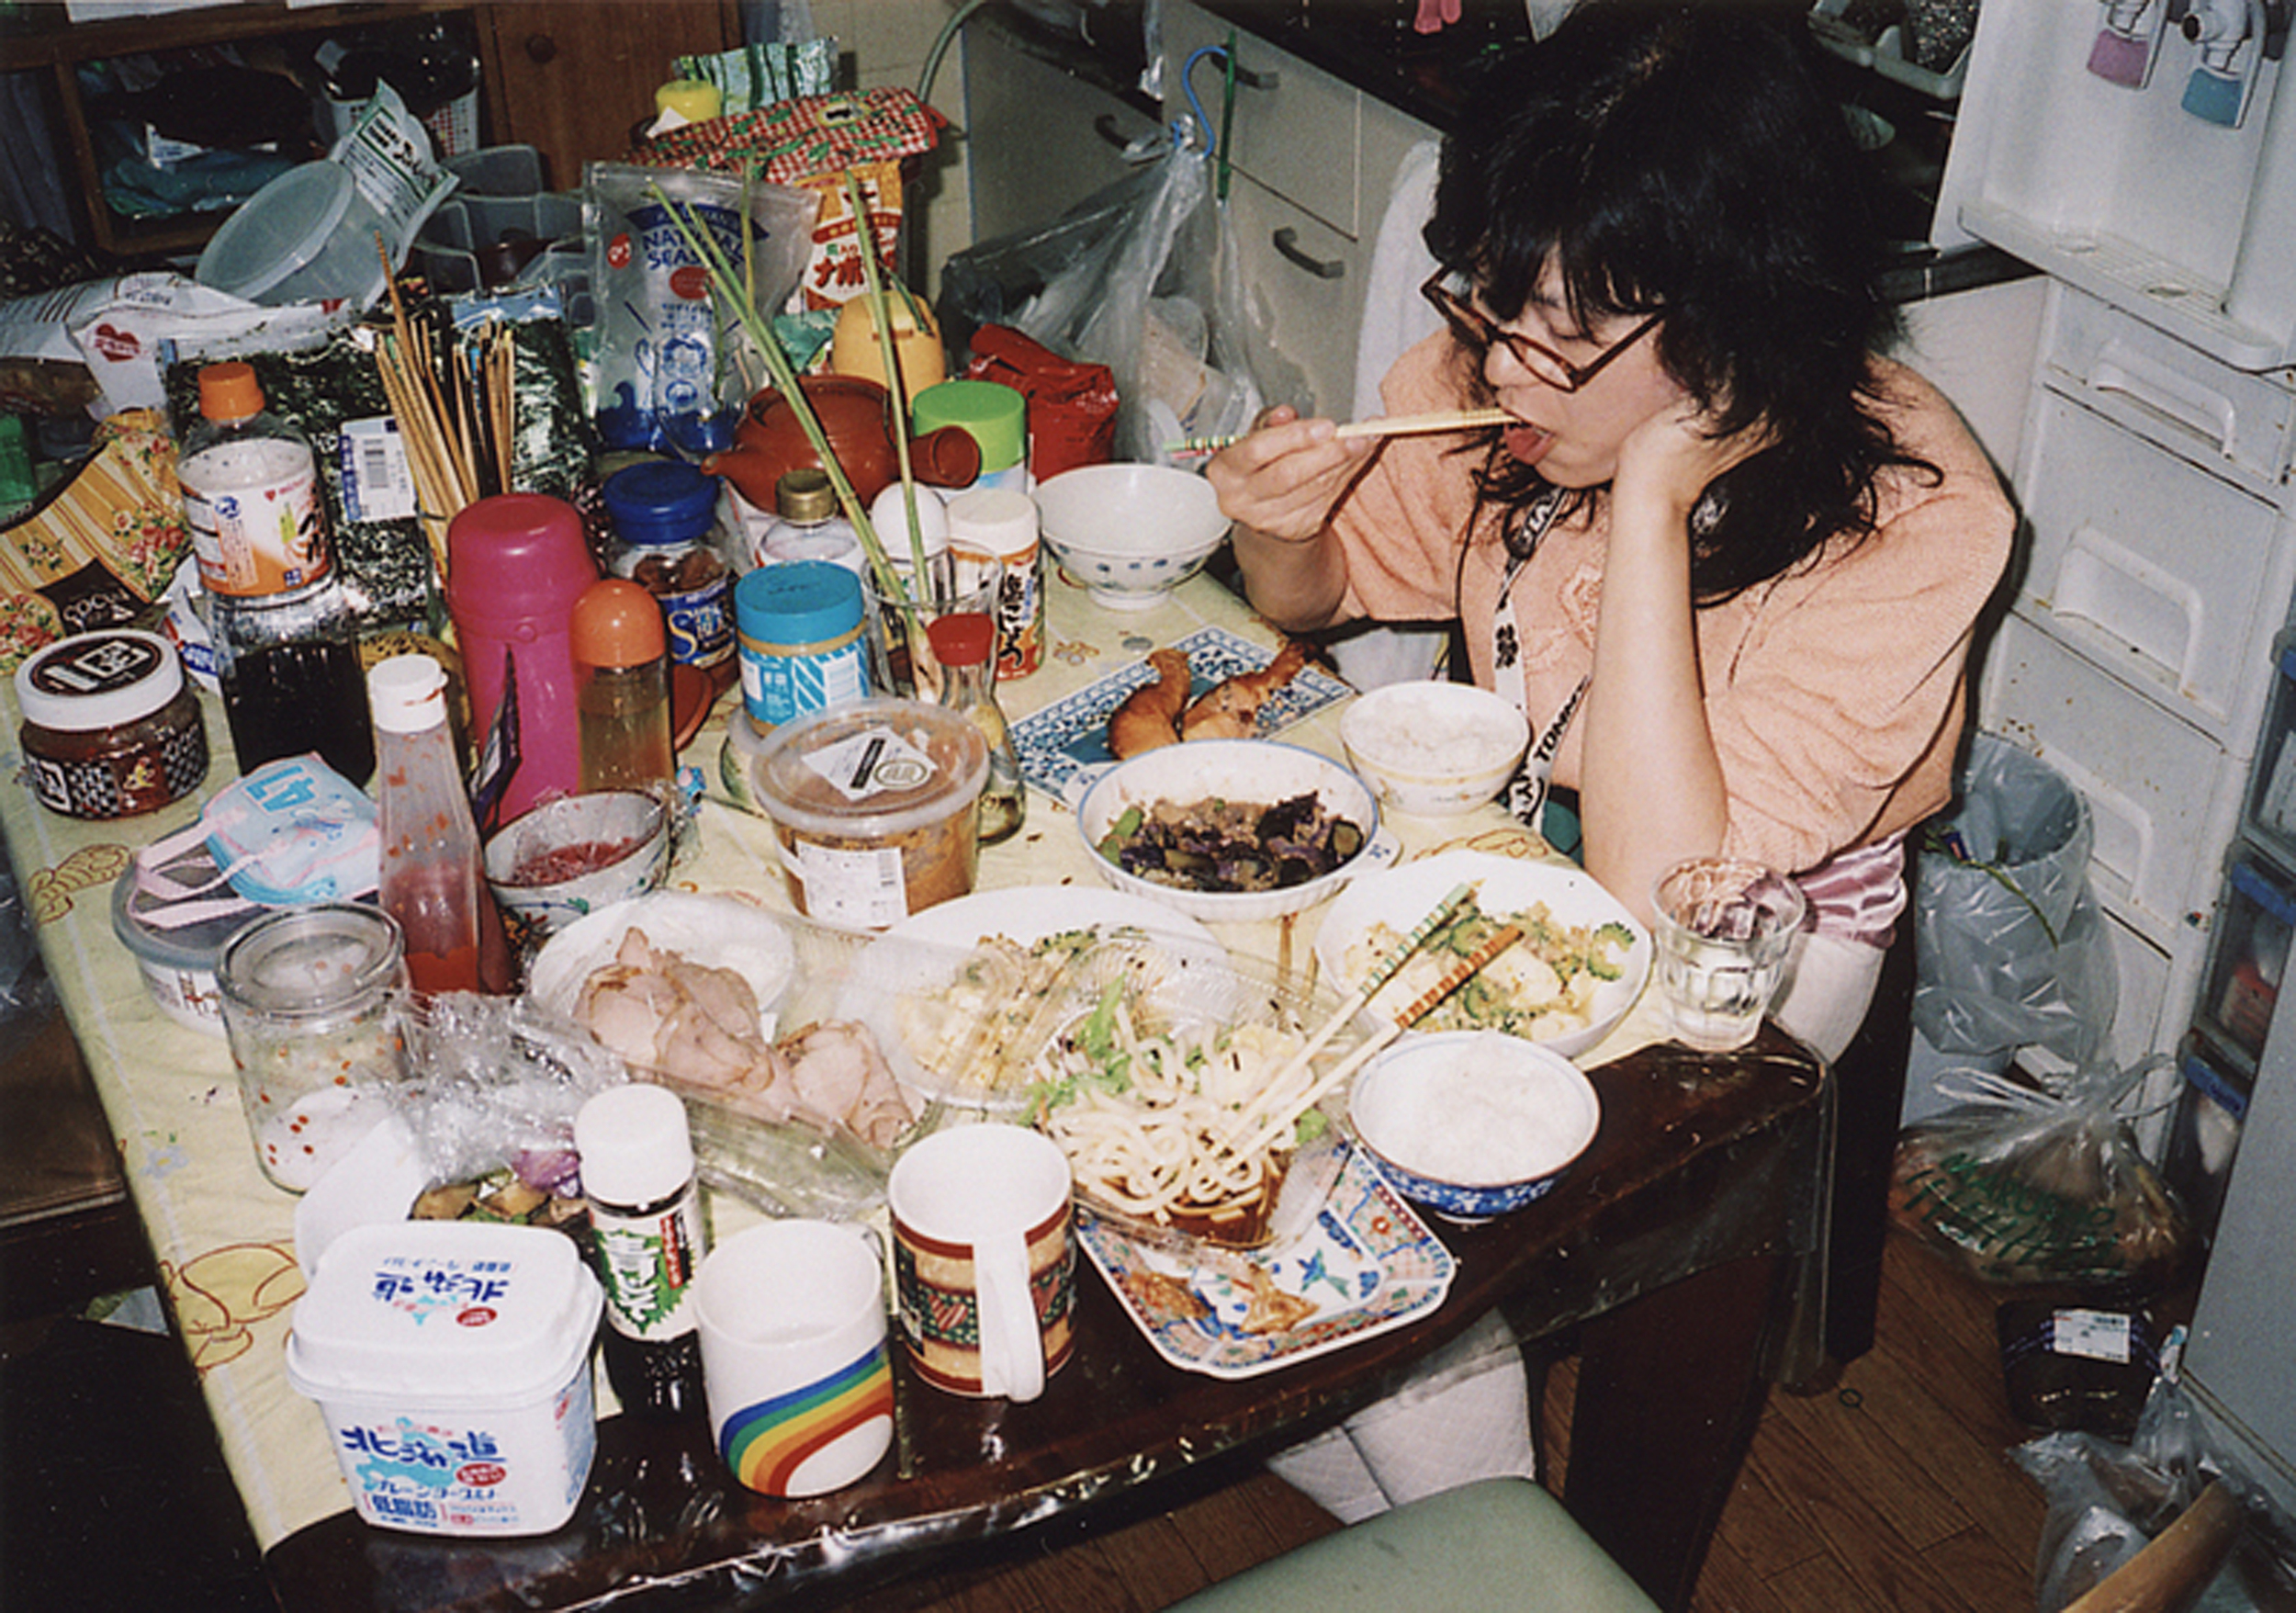 Motoyuki Daifu   My Mother Gobble Gobble  , 2010   c-print   20 x 24 inches   50.8 x 61 cm